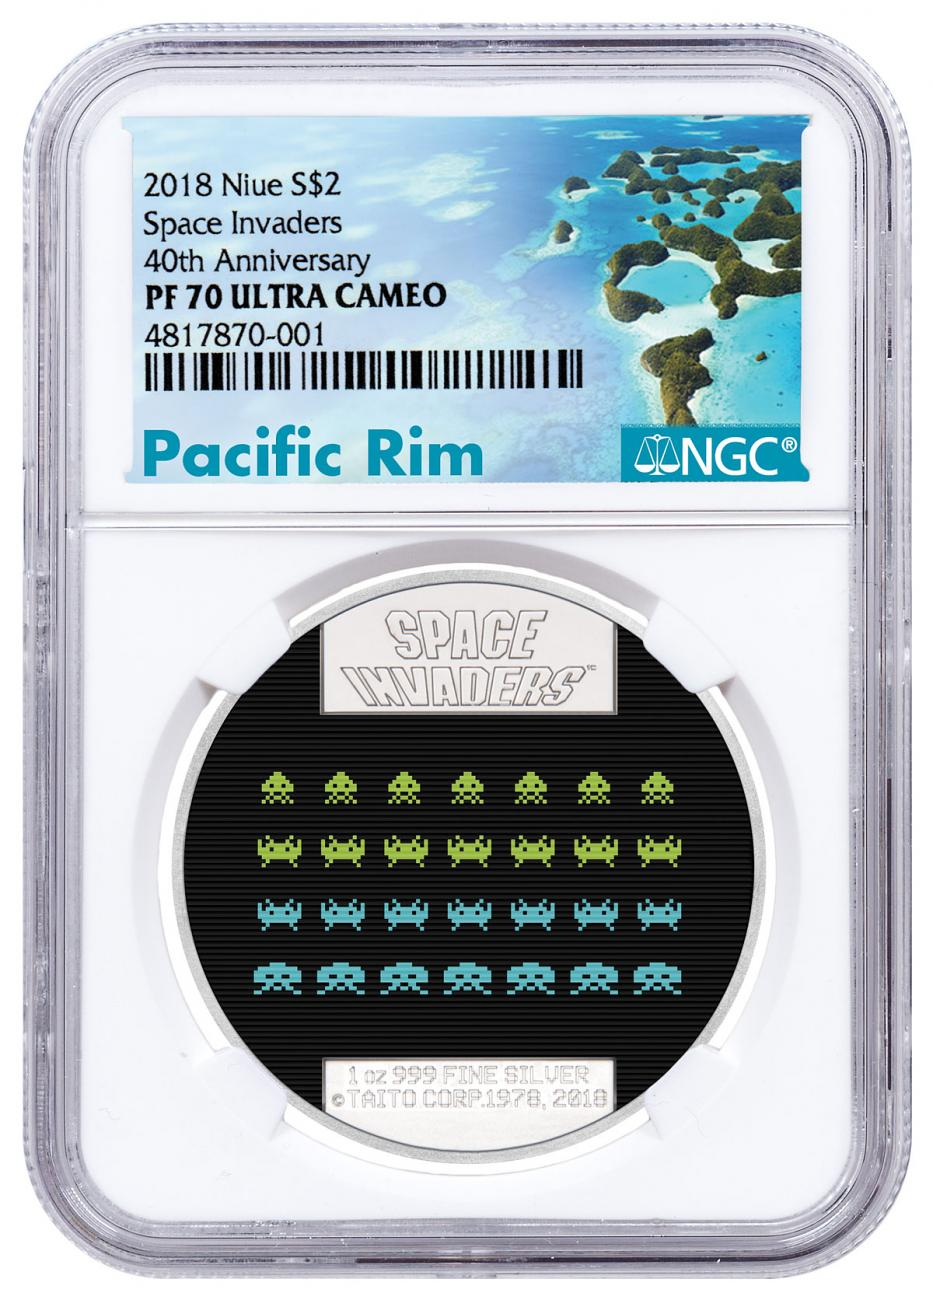 2018 Niue Space Invaders 1 oz Silver Lenticular Proof $2 Coin NGC PF70 UC Exclusive Pacific Rim Label